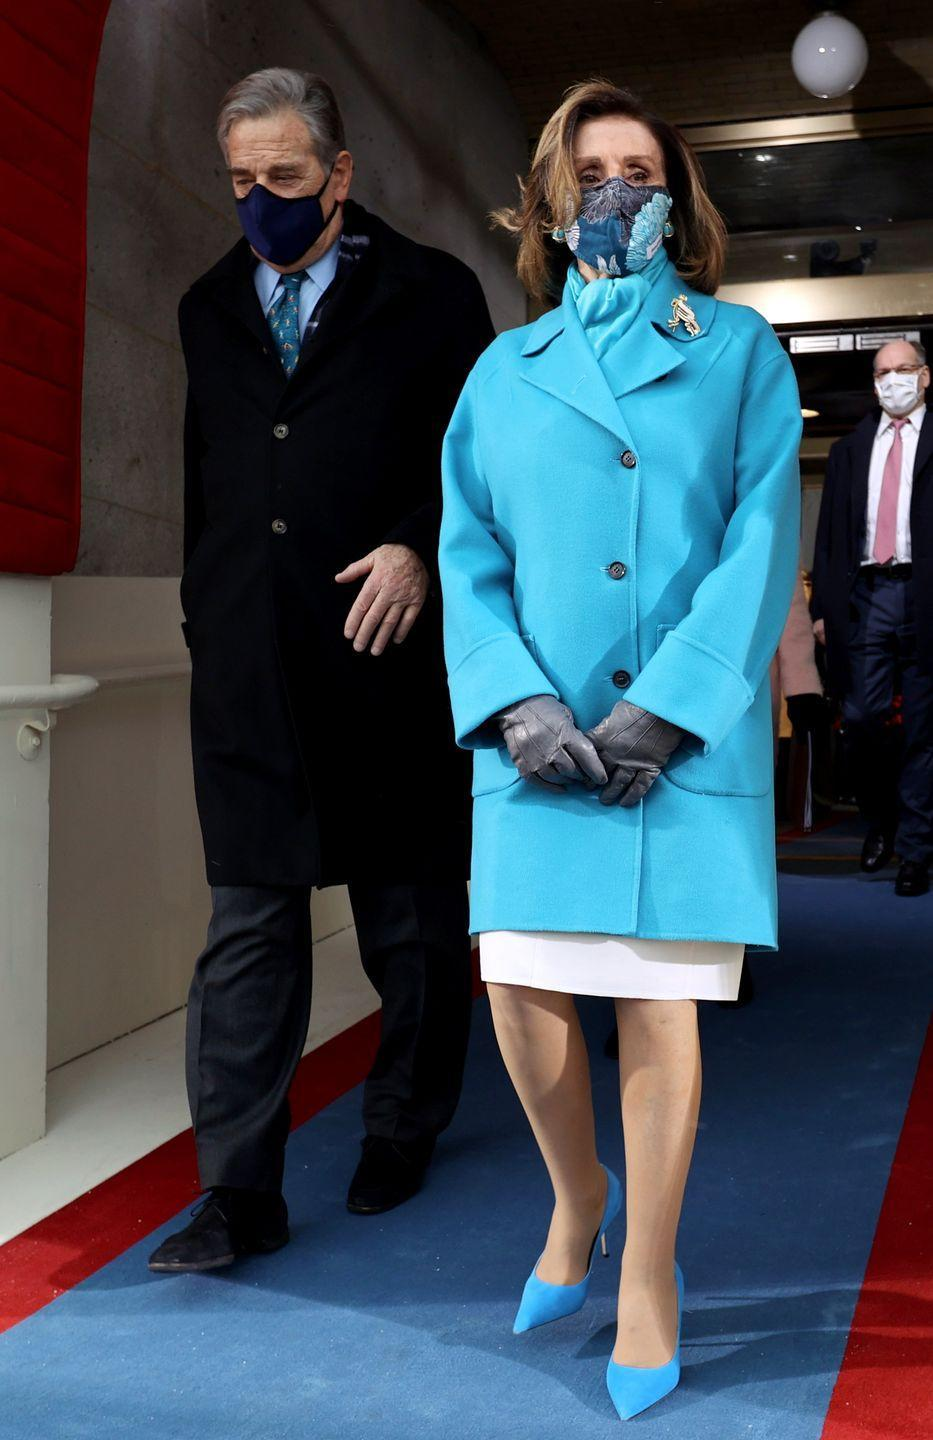 <p>Nancy Pelosi, the Speaker of the House, followed the monochromatic theme of the day and chose a cheerful shade of turquoise for her coat, scarf, and matching heels for the ceremony. Leather gloves, a well-placed brooch, and patterned mask complete the look. </p>